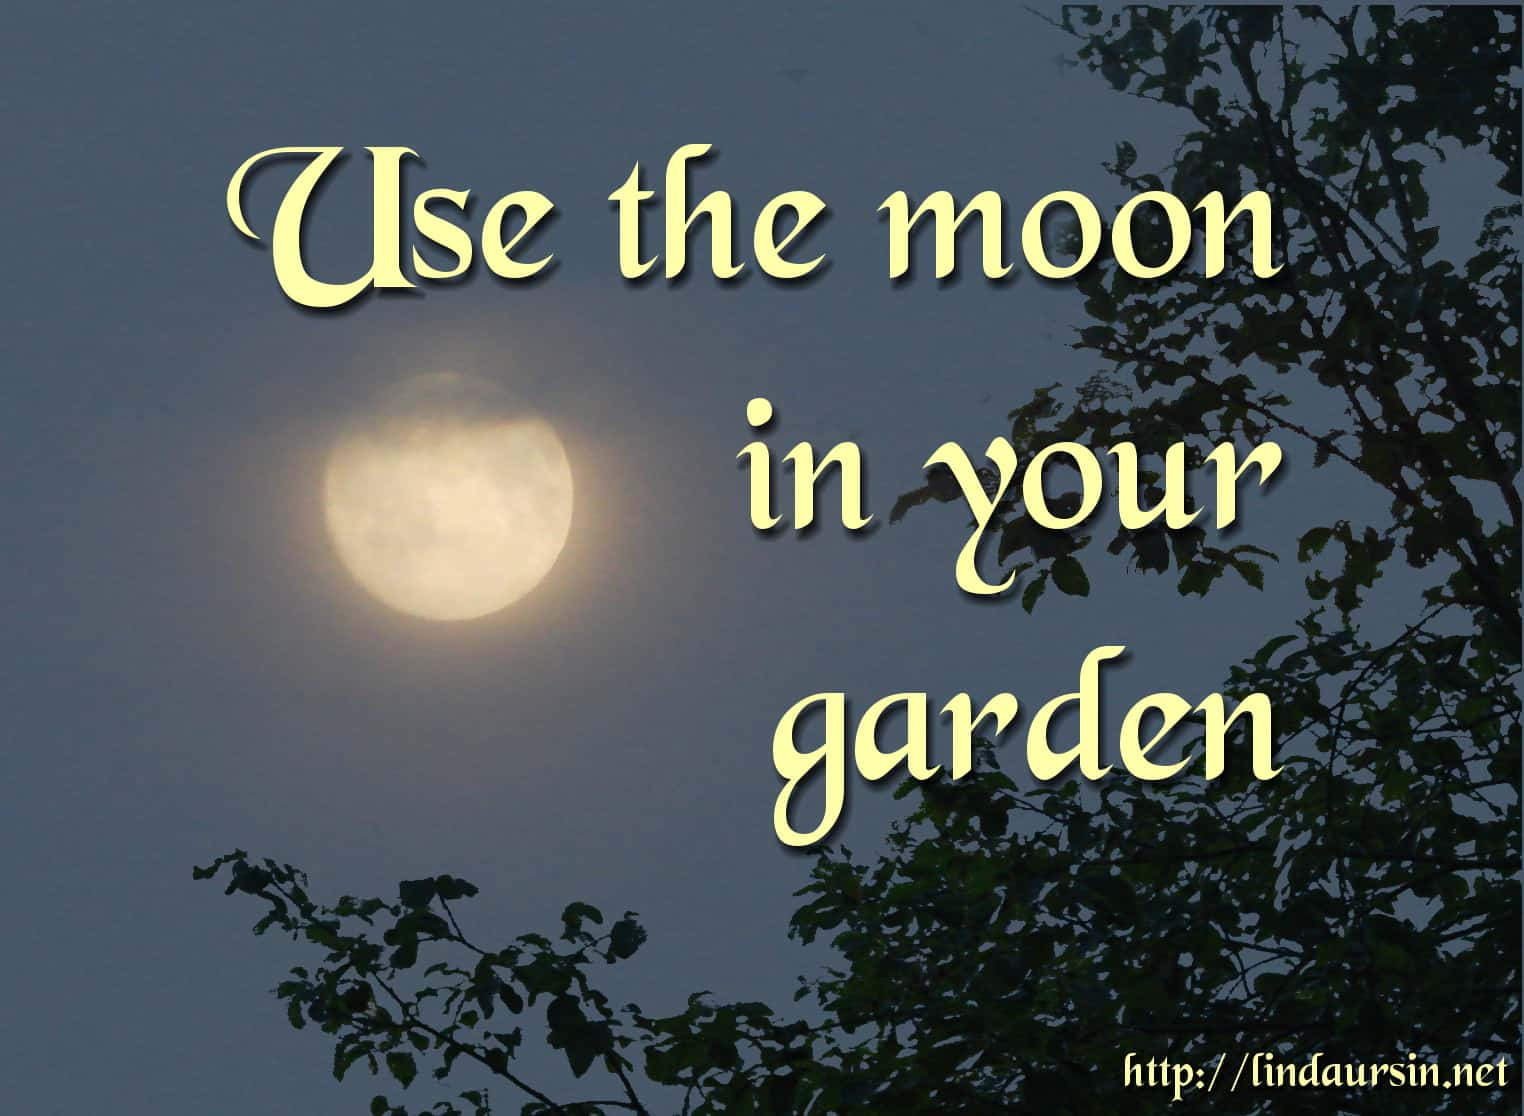 Use the moon in your garden